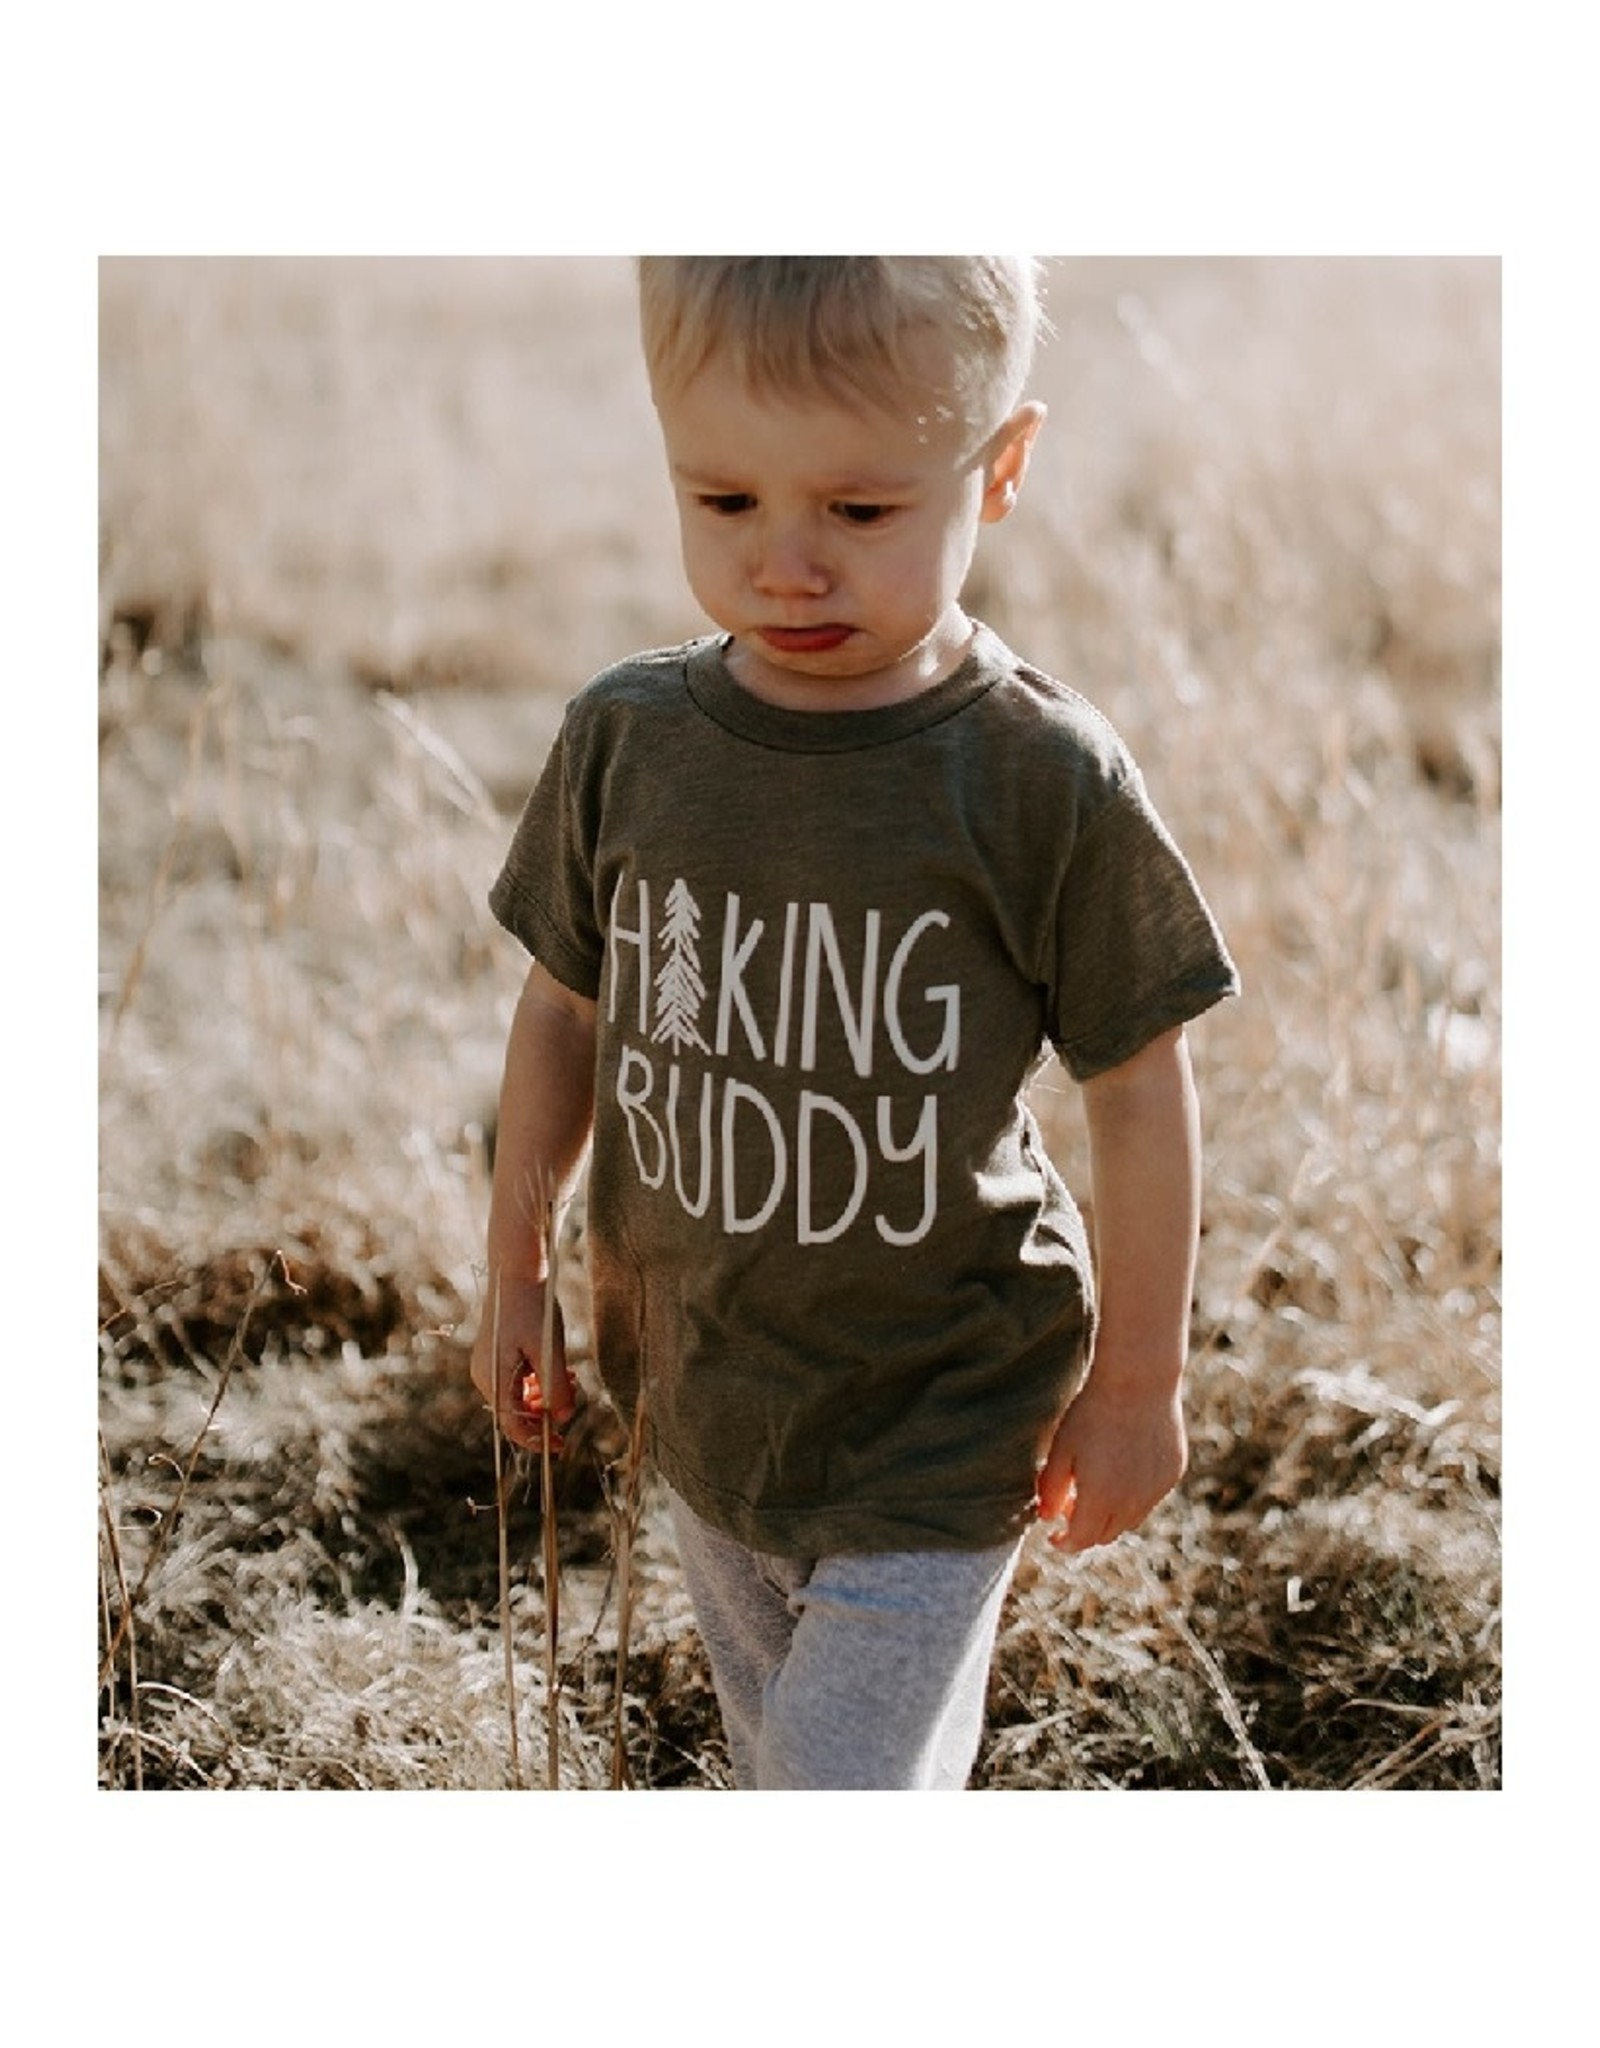 Made of Mountains Hiking Buddy Tee Olive (4T)